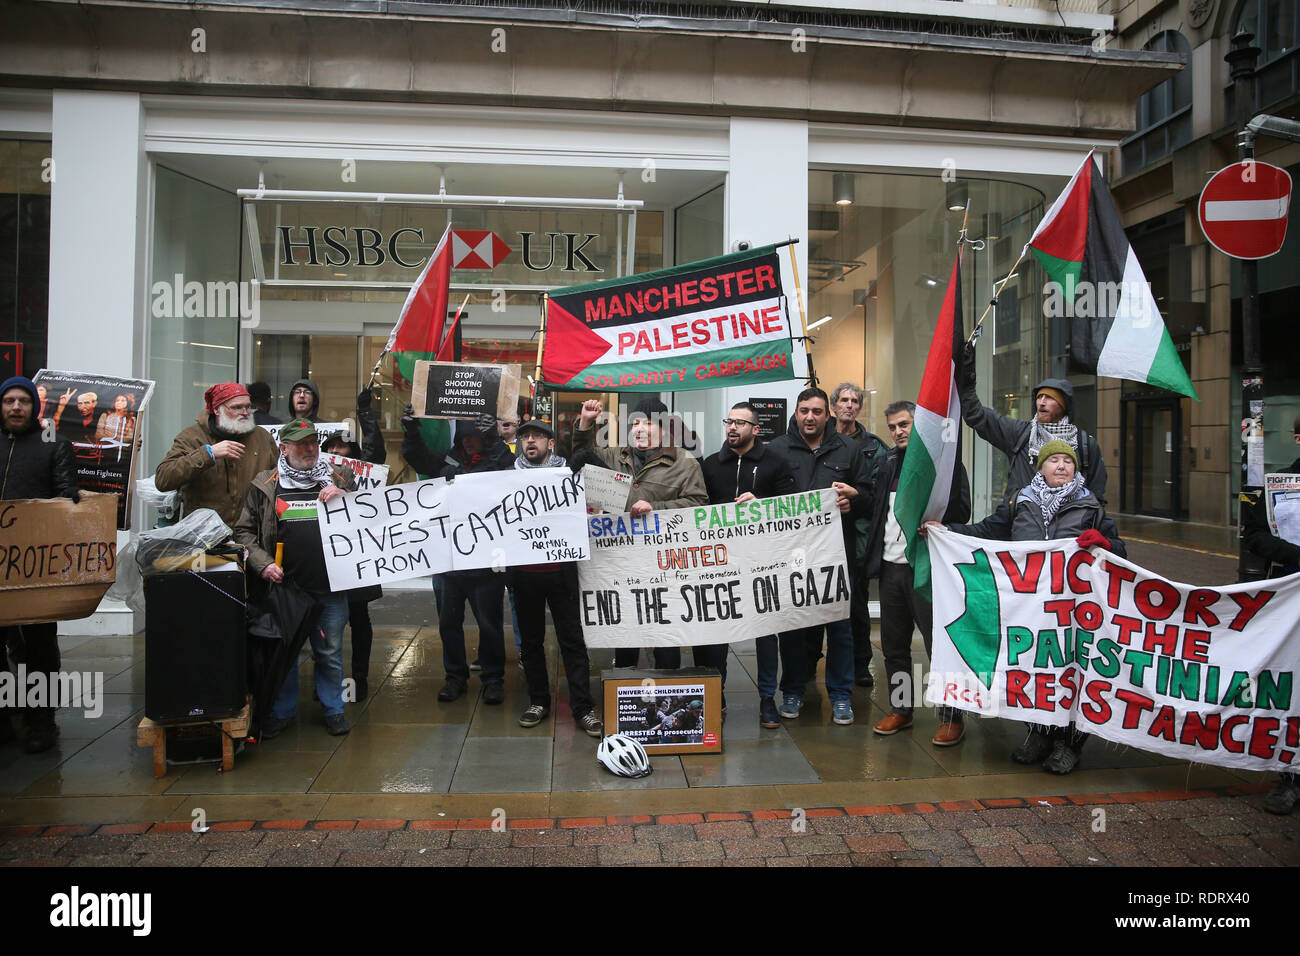 Manchester, UK. 19th January 2019. Pro Palestinian protesters outside HSBC Bank during International week of action called by the Manchester boycott Israel group in solidarity with the Palestinian Prisoner Solidarity Network.  19th January 2019 (C)Barbara Cook/Alamy Live News Credit: Barbara Cook/Alamy Live News - Stock Image